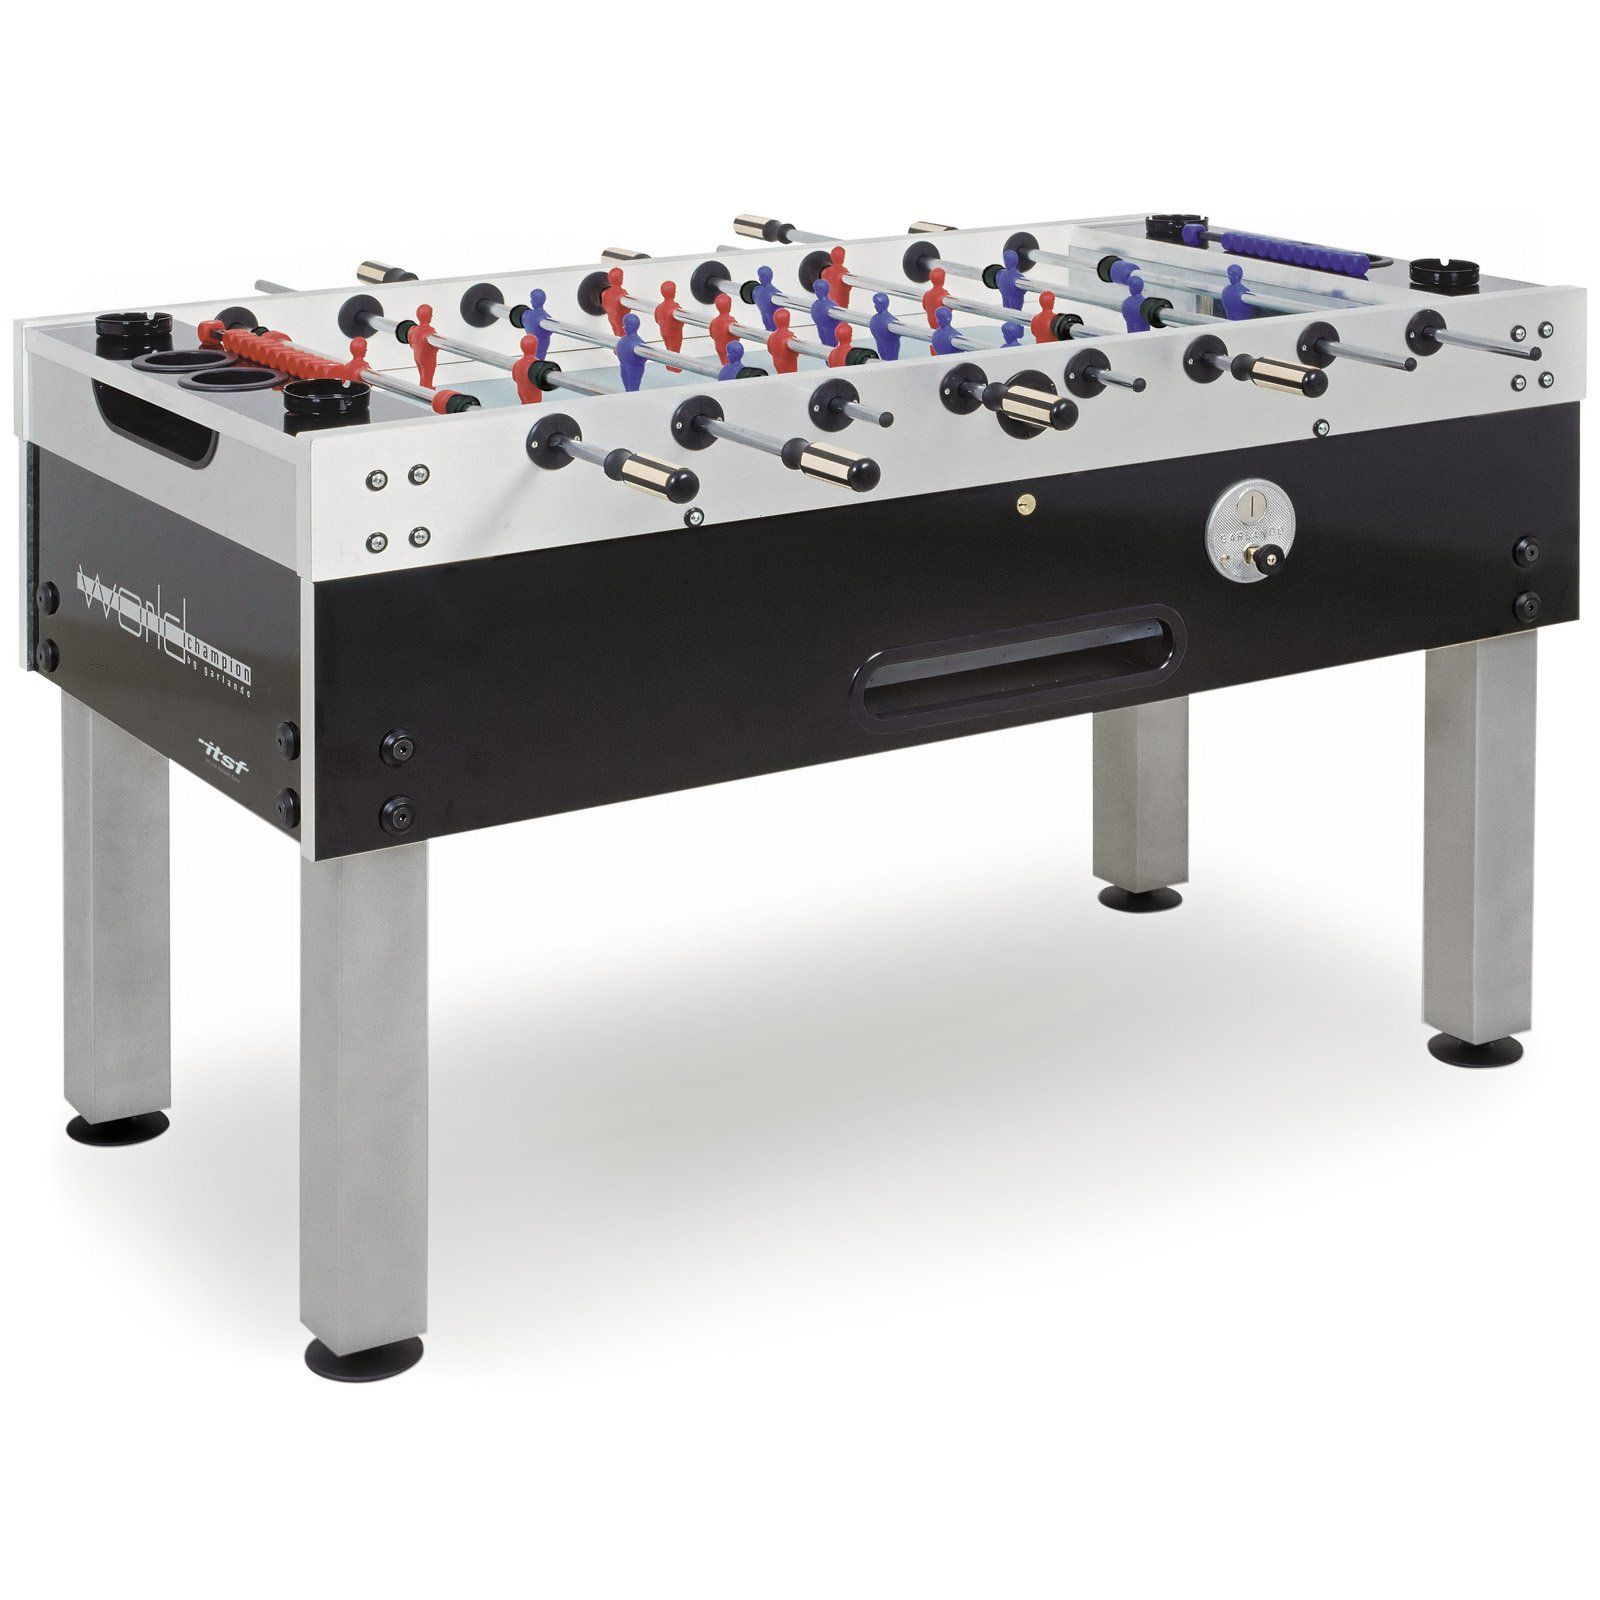 Foosball Table   Approved By The International Tournament Soccer  Federation, The Garlando World Champion Coin Op 59 In. Foosball Table Is  The Official Table ...